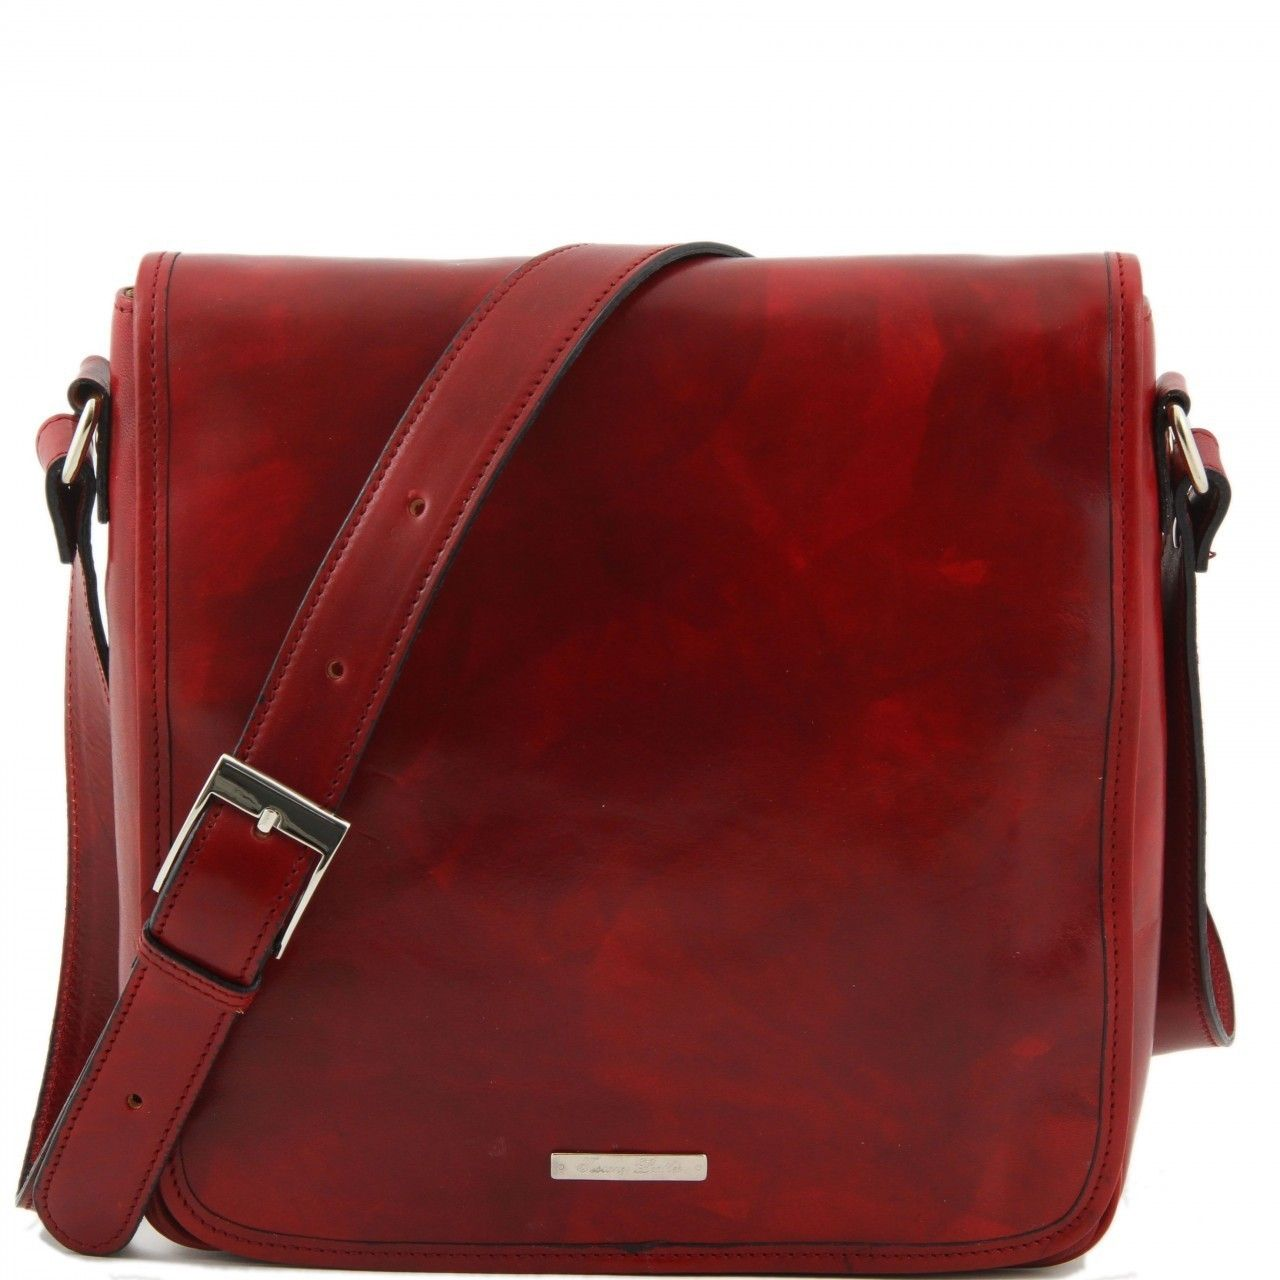 Love Leather Travel Bag - Freestyle Leather Messenger Small in Red 089b6f40414c4